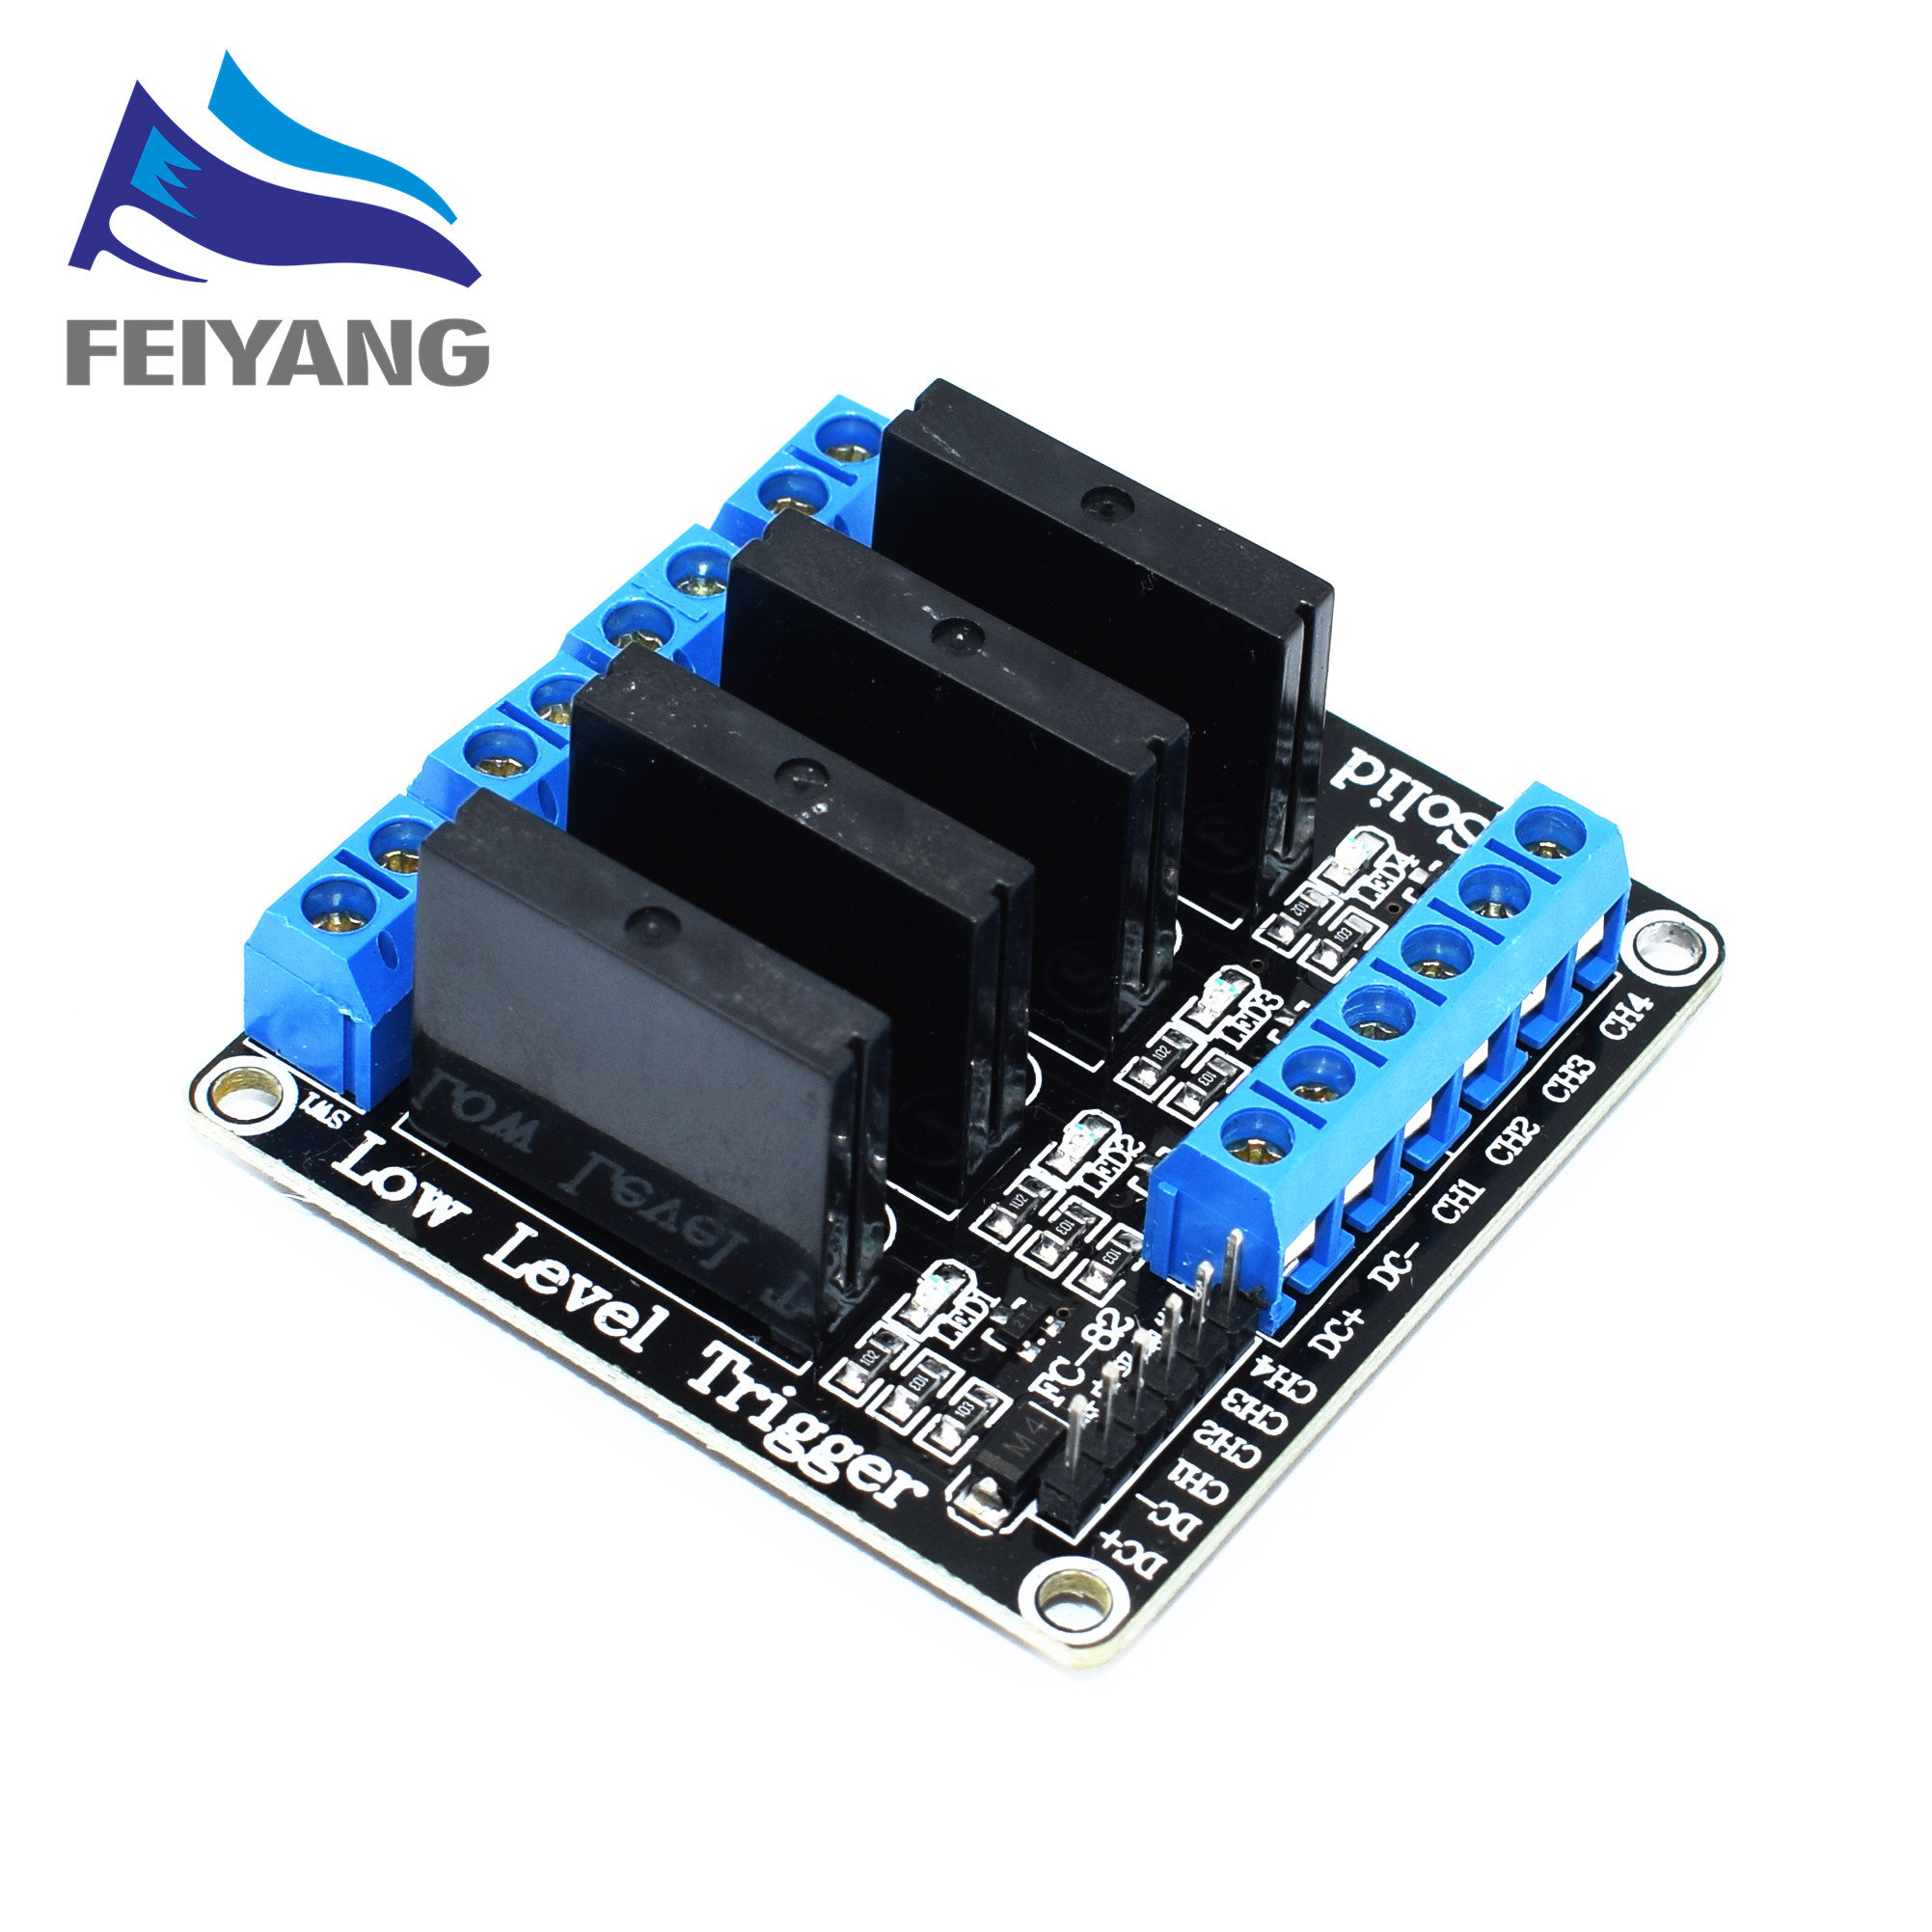 4 Channel 5v Dc Relay Module Solid State Low Level Ssr Avr Dsp 2a Voltage 25a Single Phase Control Ac Mgr 1 D4825 Load